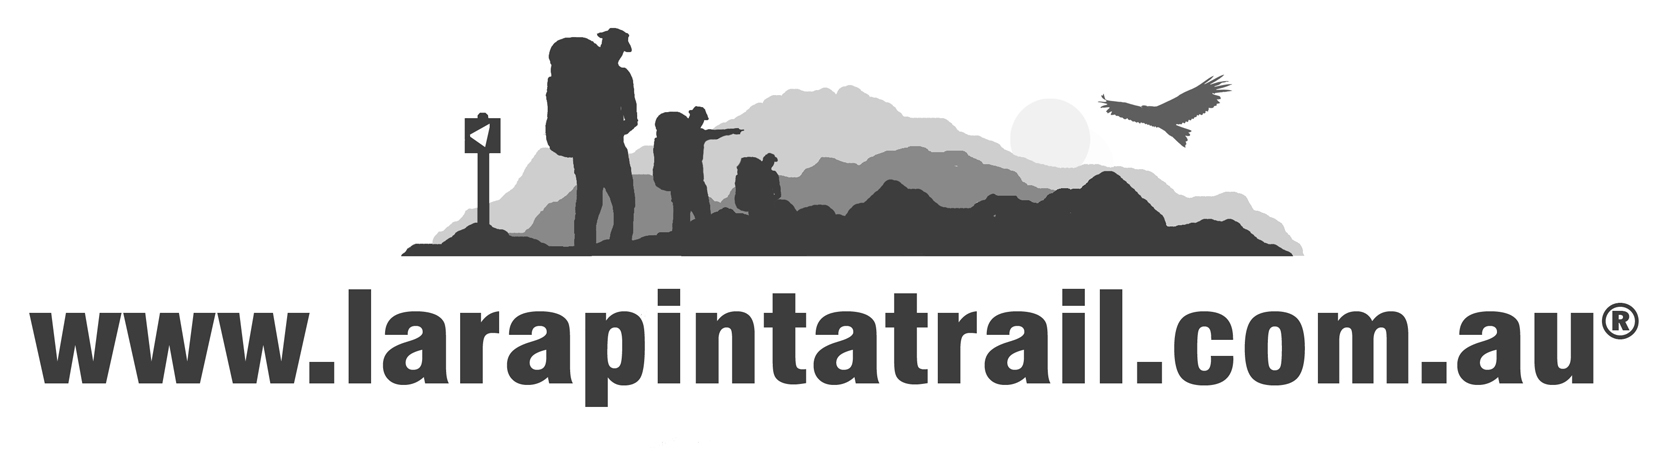 larapinta_trail_logo_registered_sml